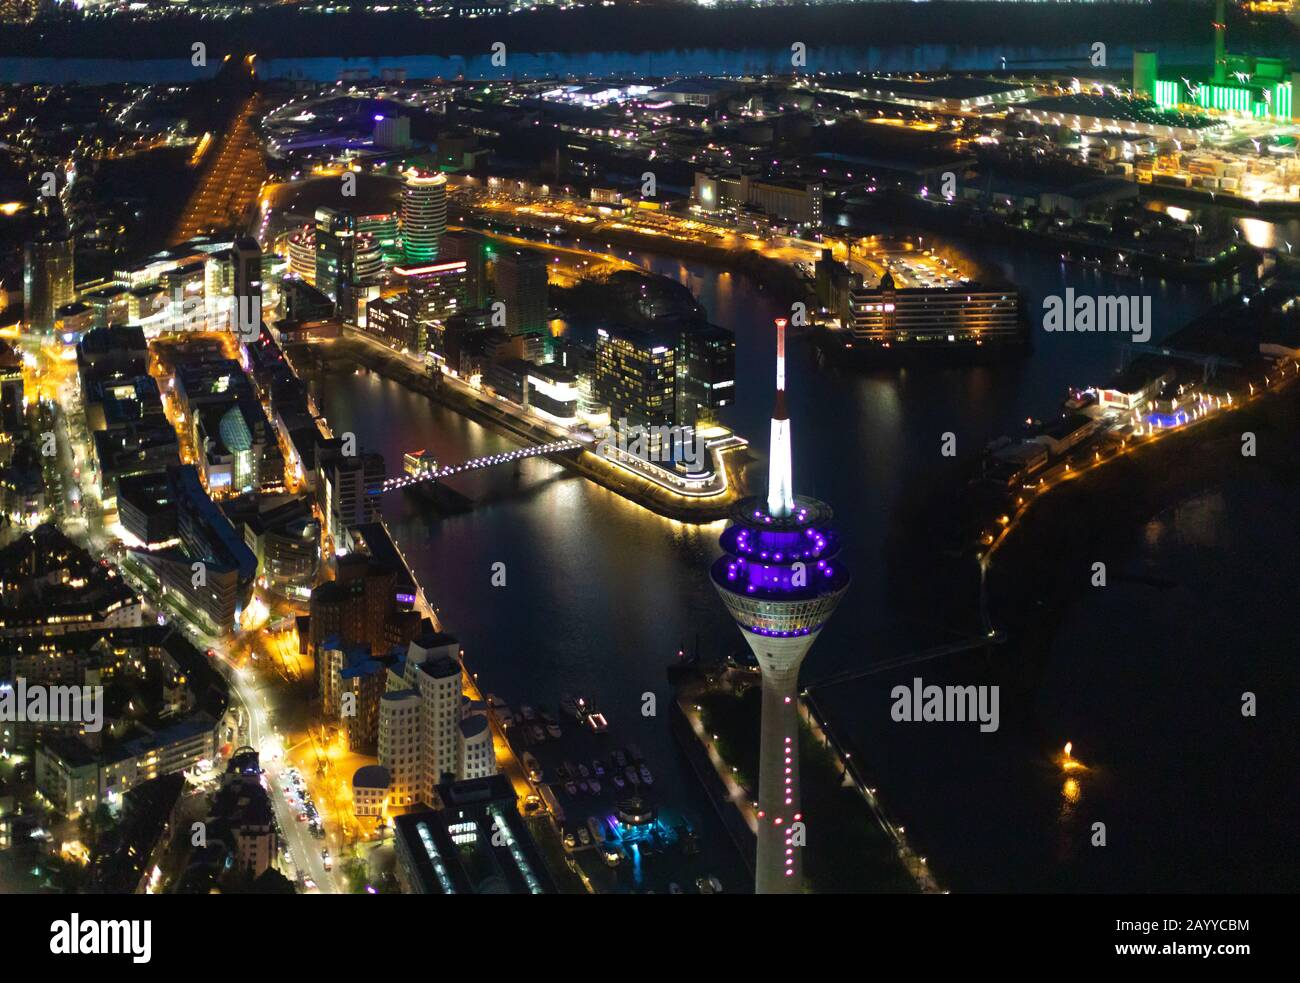 Aerial photo, television tower, state parliament, trivago N.V., travel agency head office, Ying-Yang, media harbour Düsseldorf am Rhein, city district Stock Photo